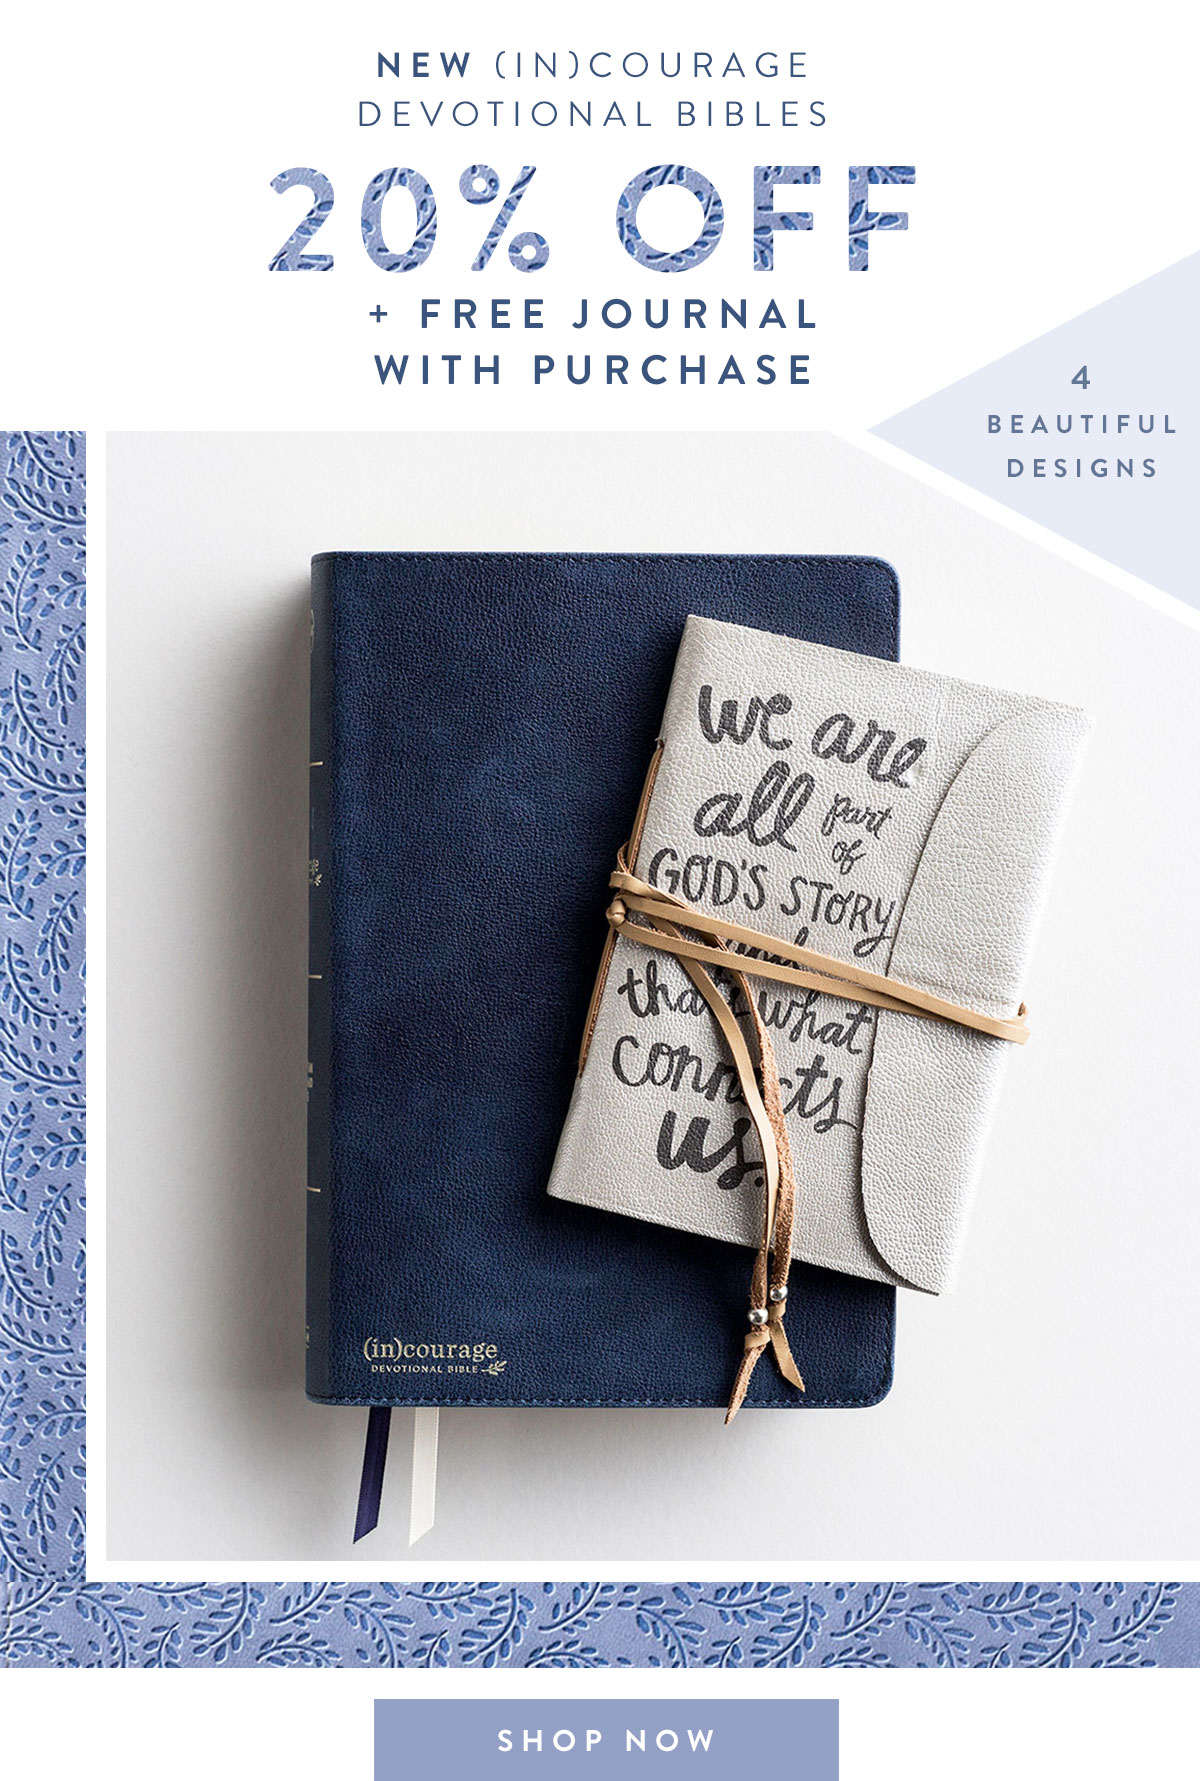 DaySpring: New (in)courage Devotional Bibles - 20% Off and a